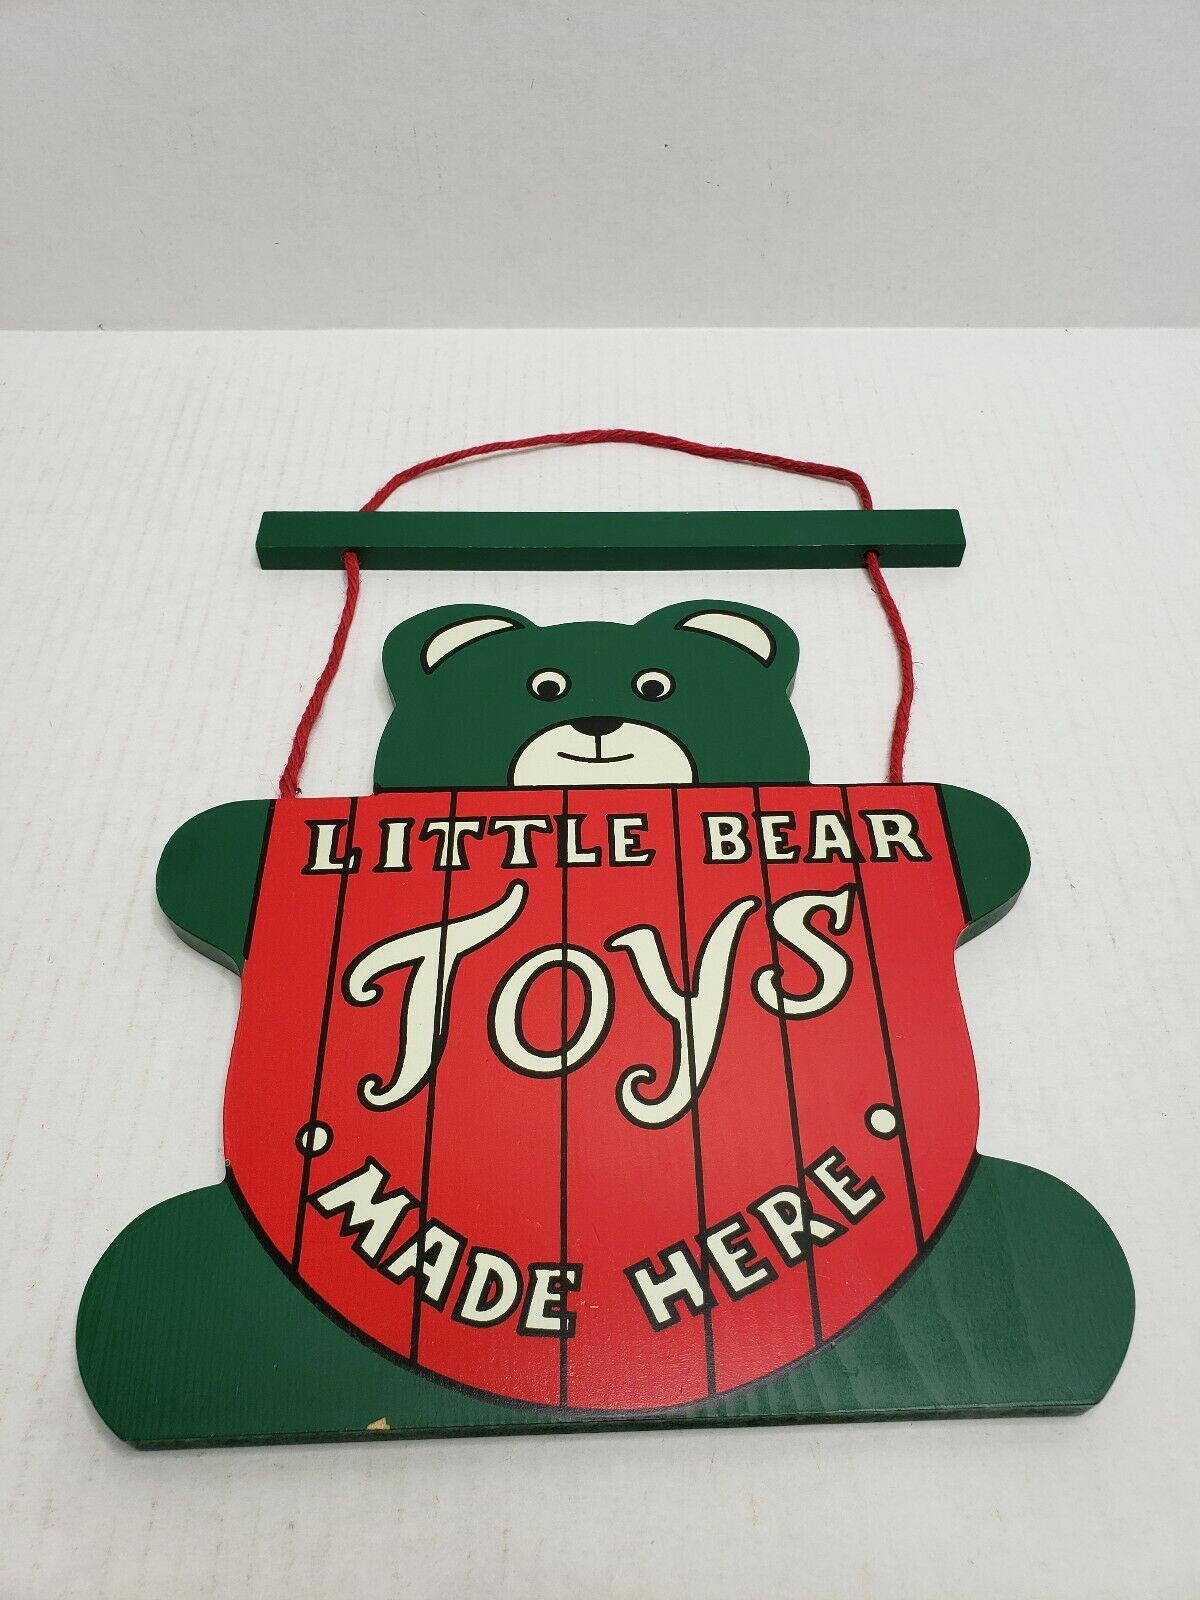 Retro Vintage Wooden Painted Little Bear Toys Made Here Hanging Sign 14 x10  USA